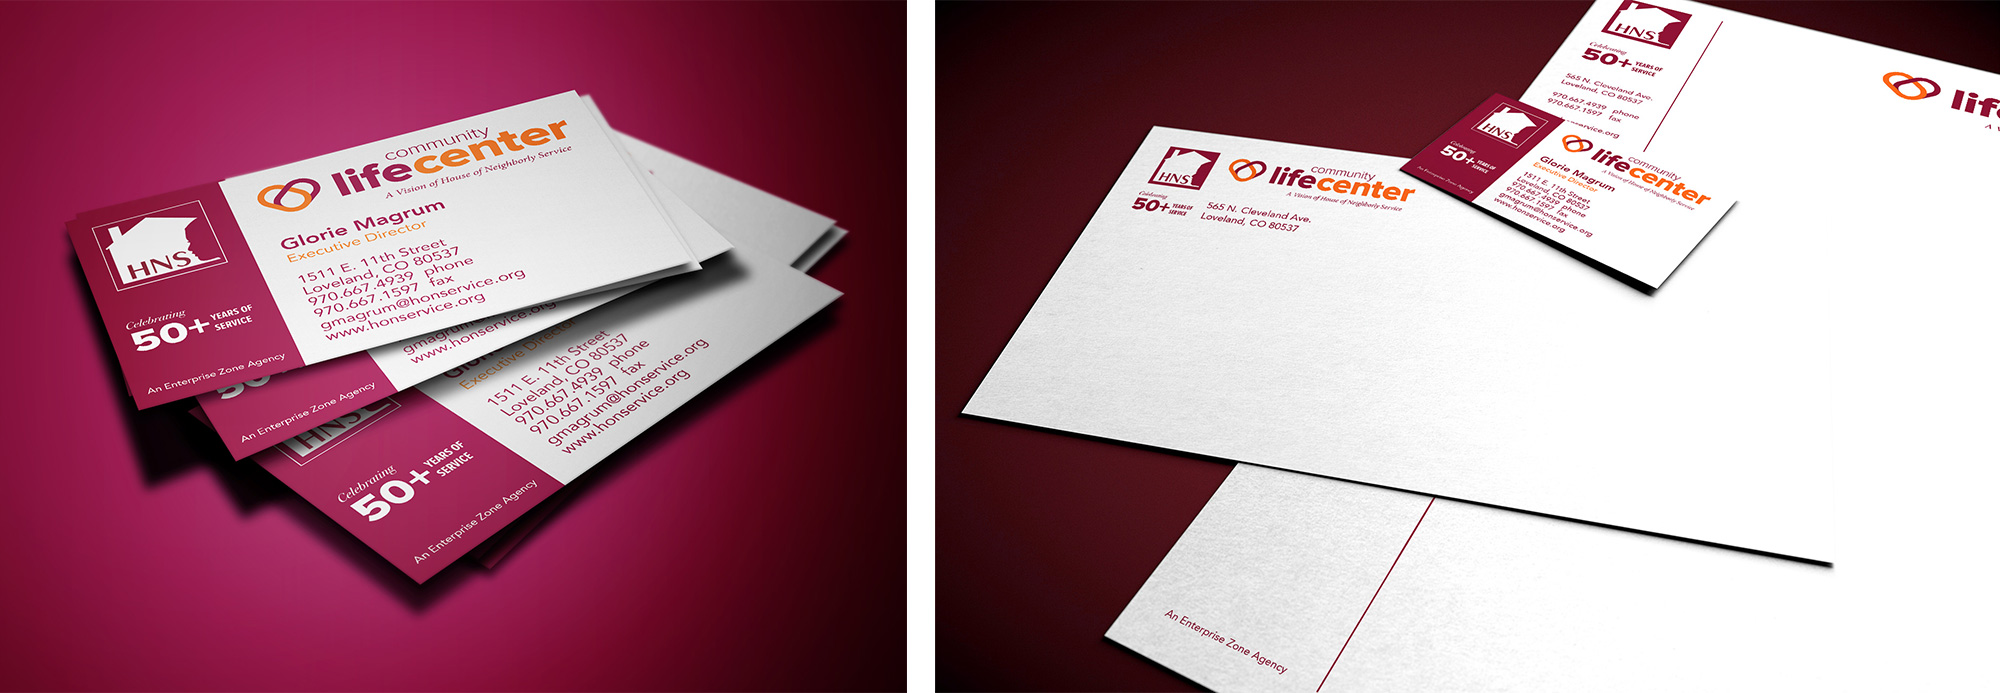 HNS-CLC-bc-stationery